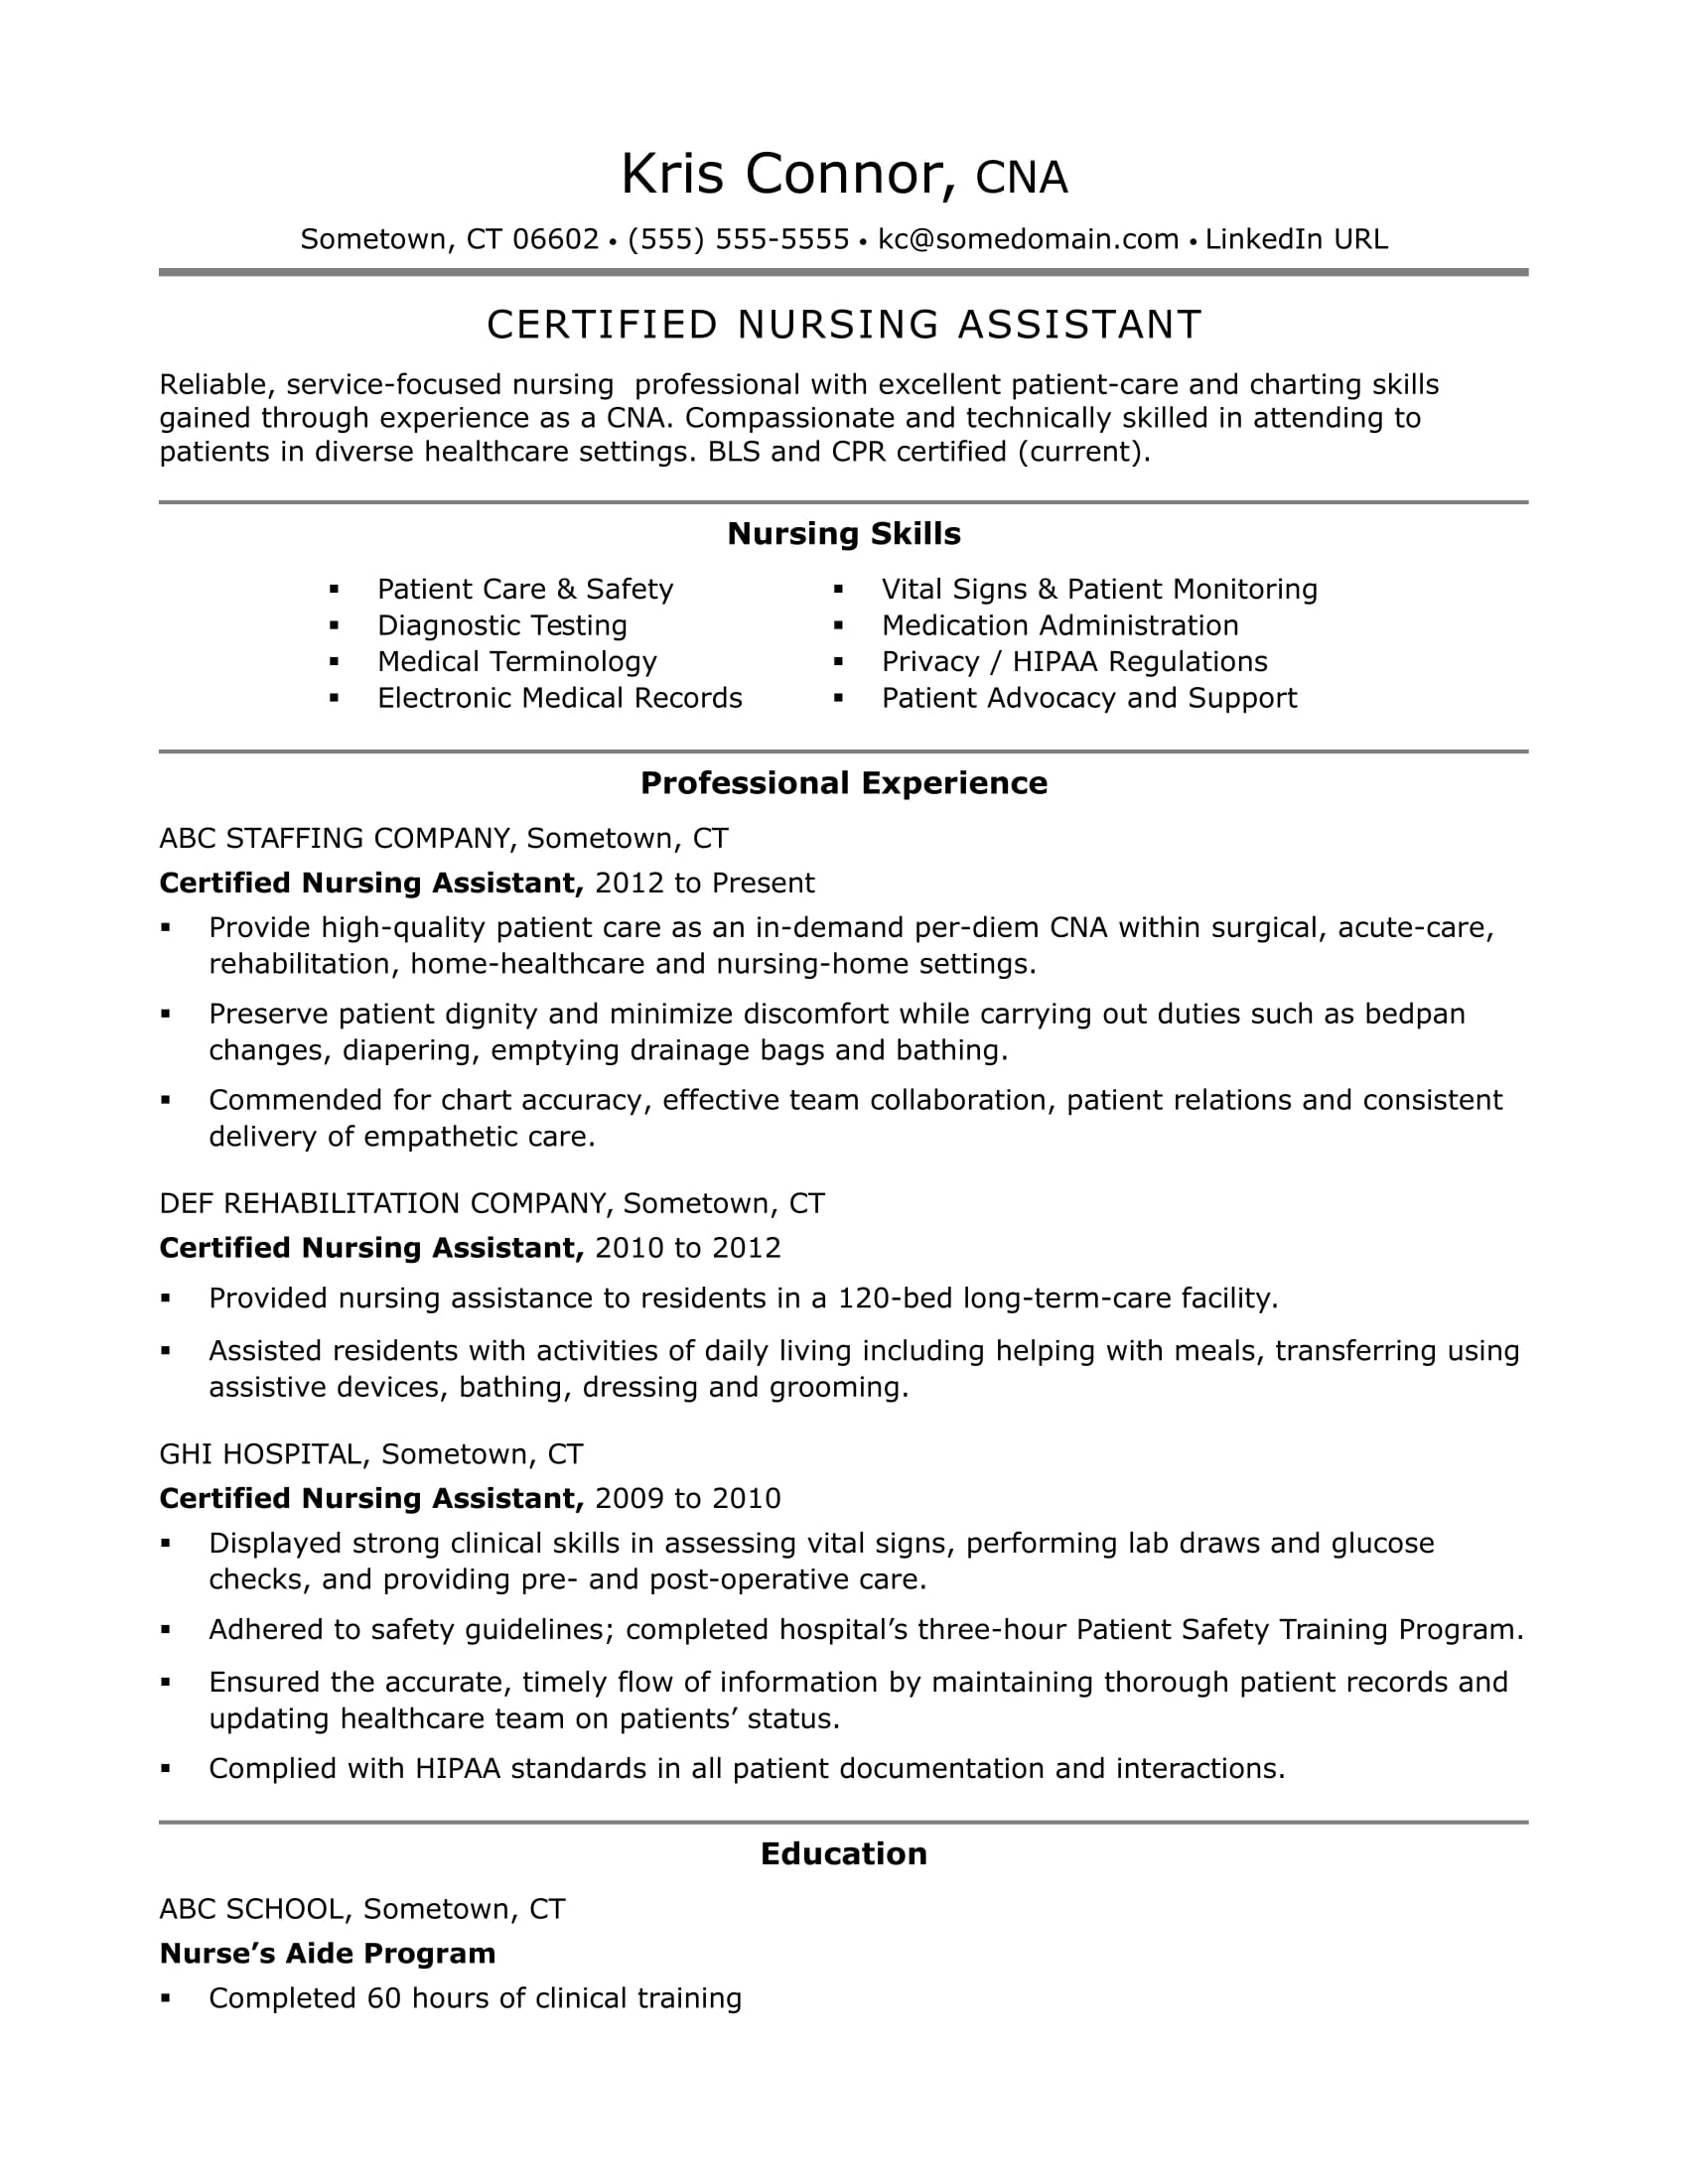 cna resume examples skills for cnas monster and accomplishments certified nursing Resume Skills And Accomplishments For Resume Examples